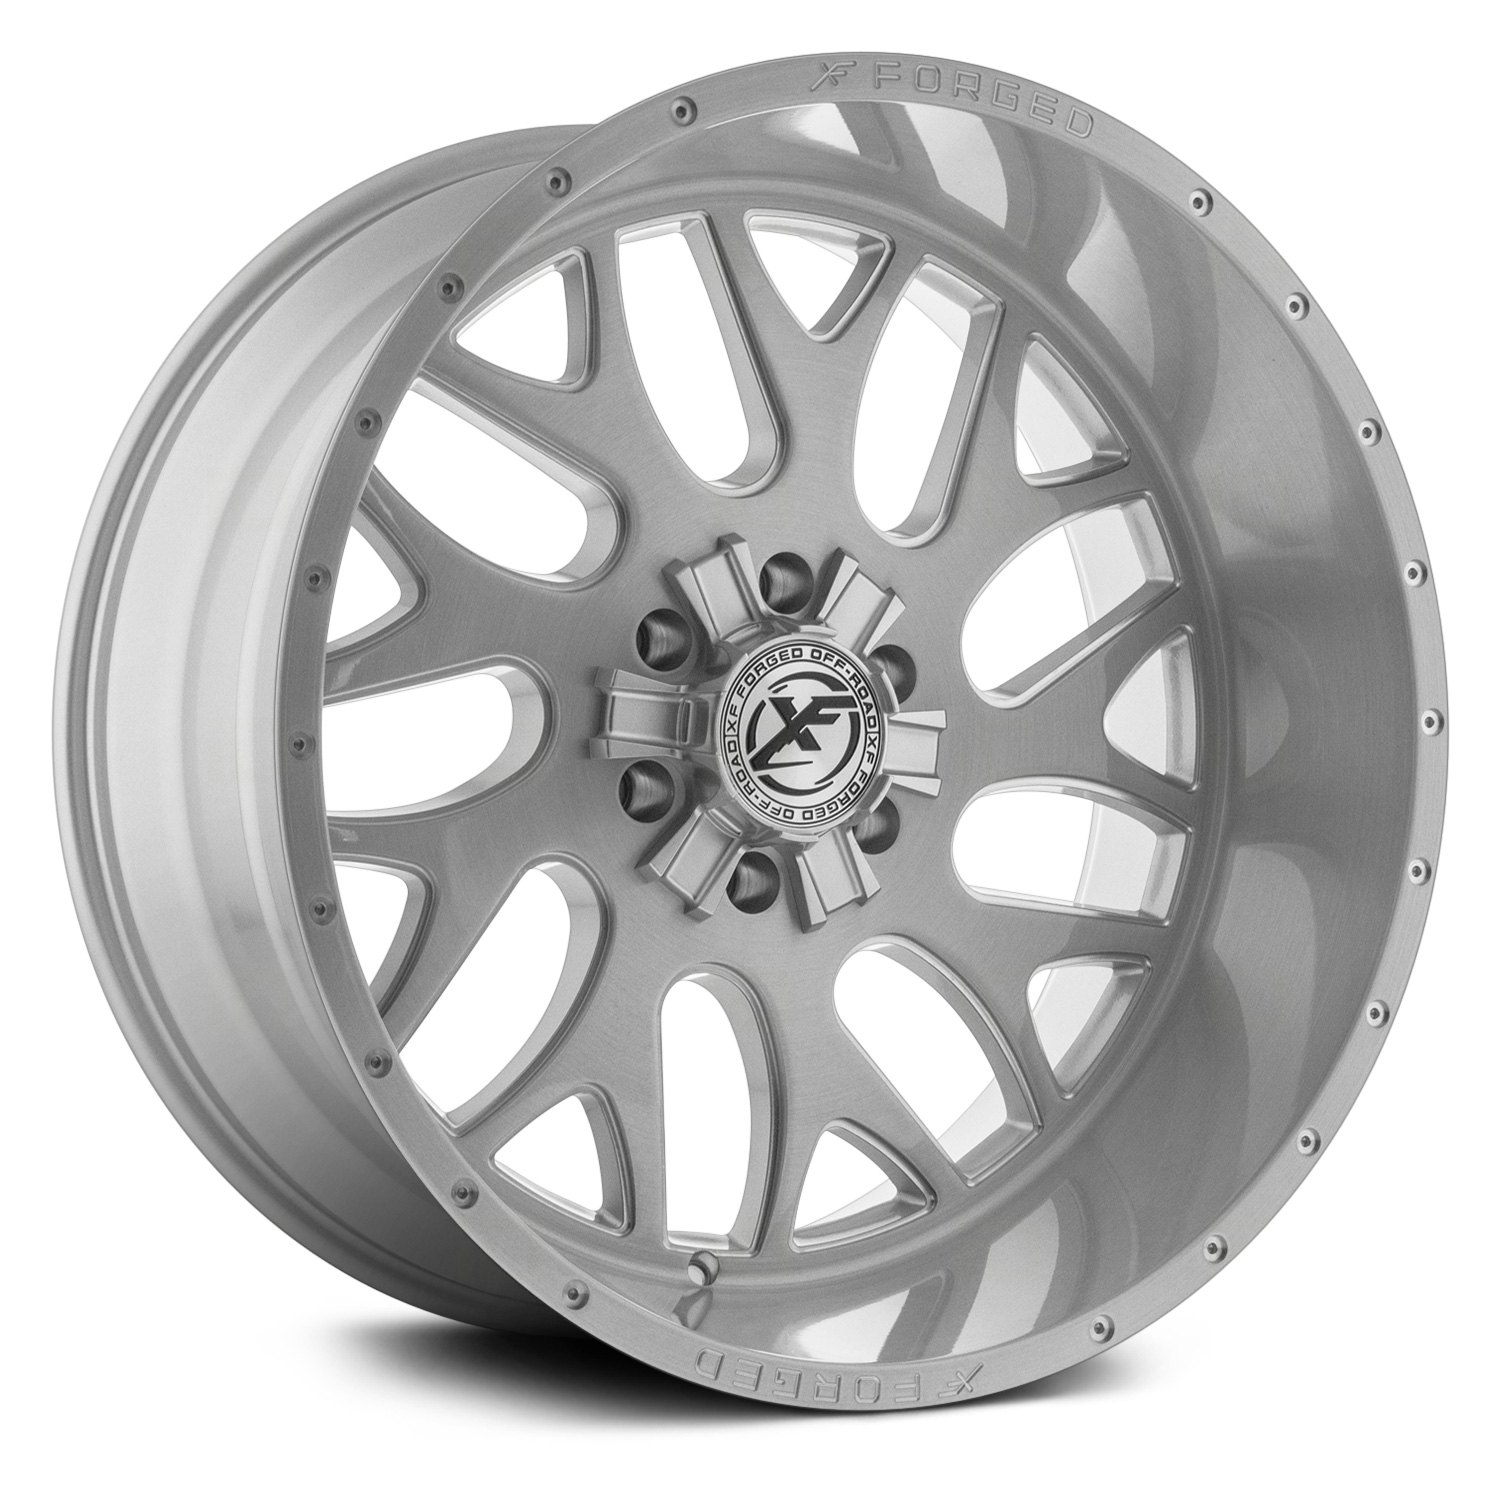 Xf Off Road Xfx 301 Wheels Milled Brushed Rims